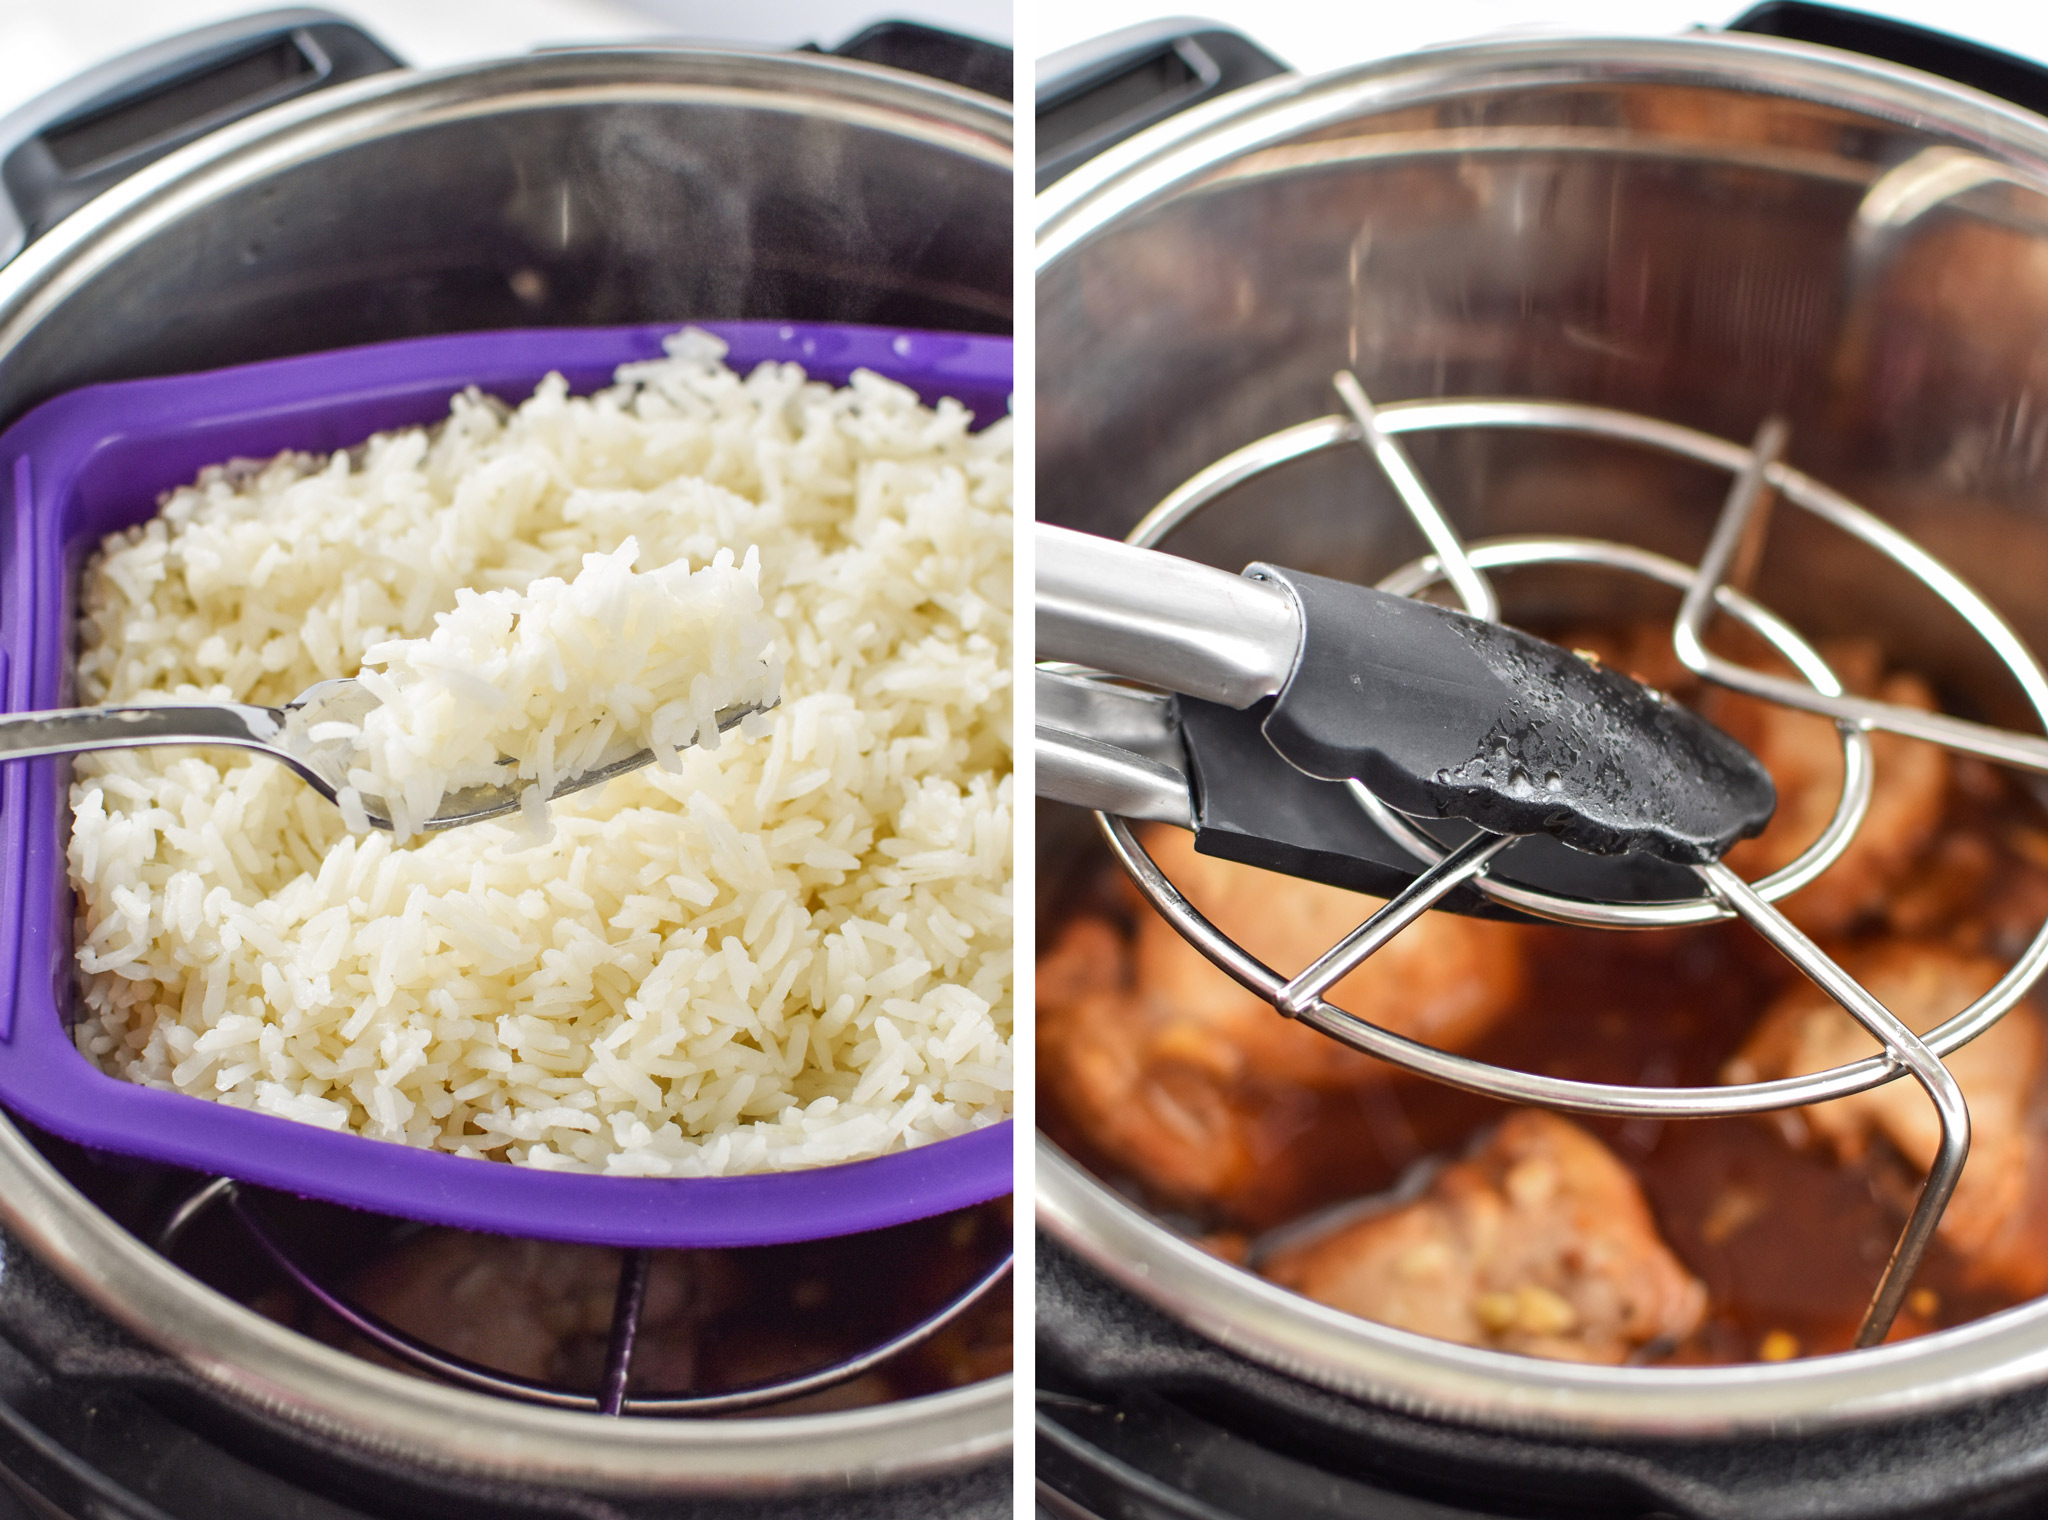 Left: Cooked rice for the Instant Pot Honey Garlic Chicken Meal Prep Bowls. Right: Removing the trivet from the Instant Pot.